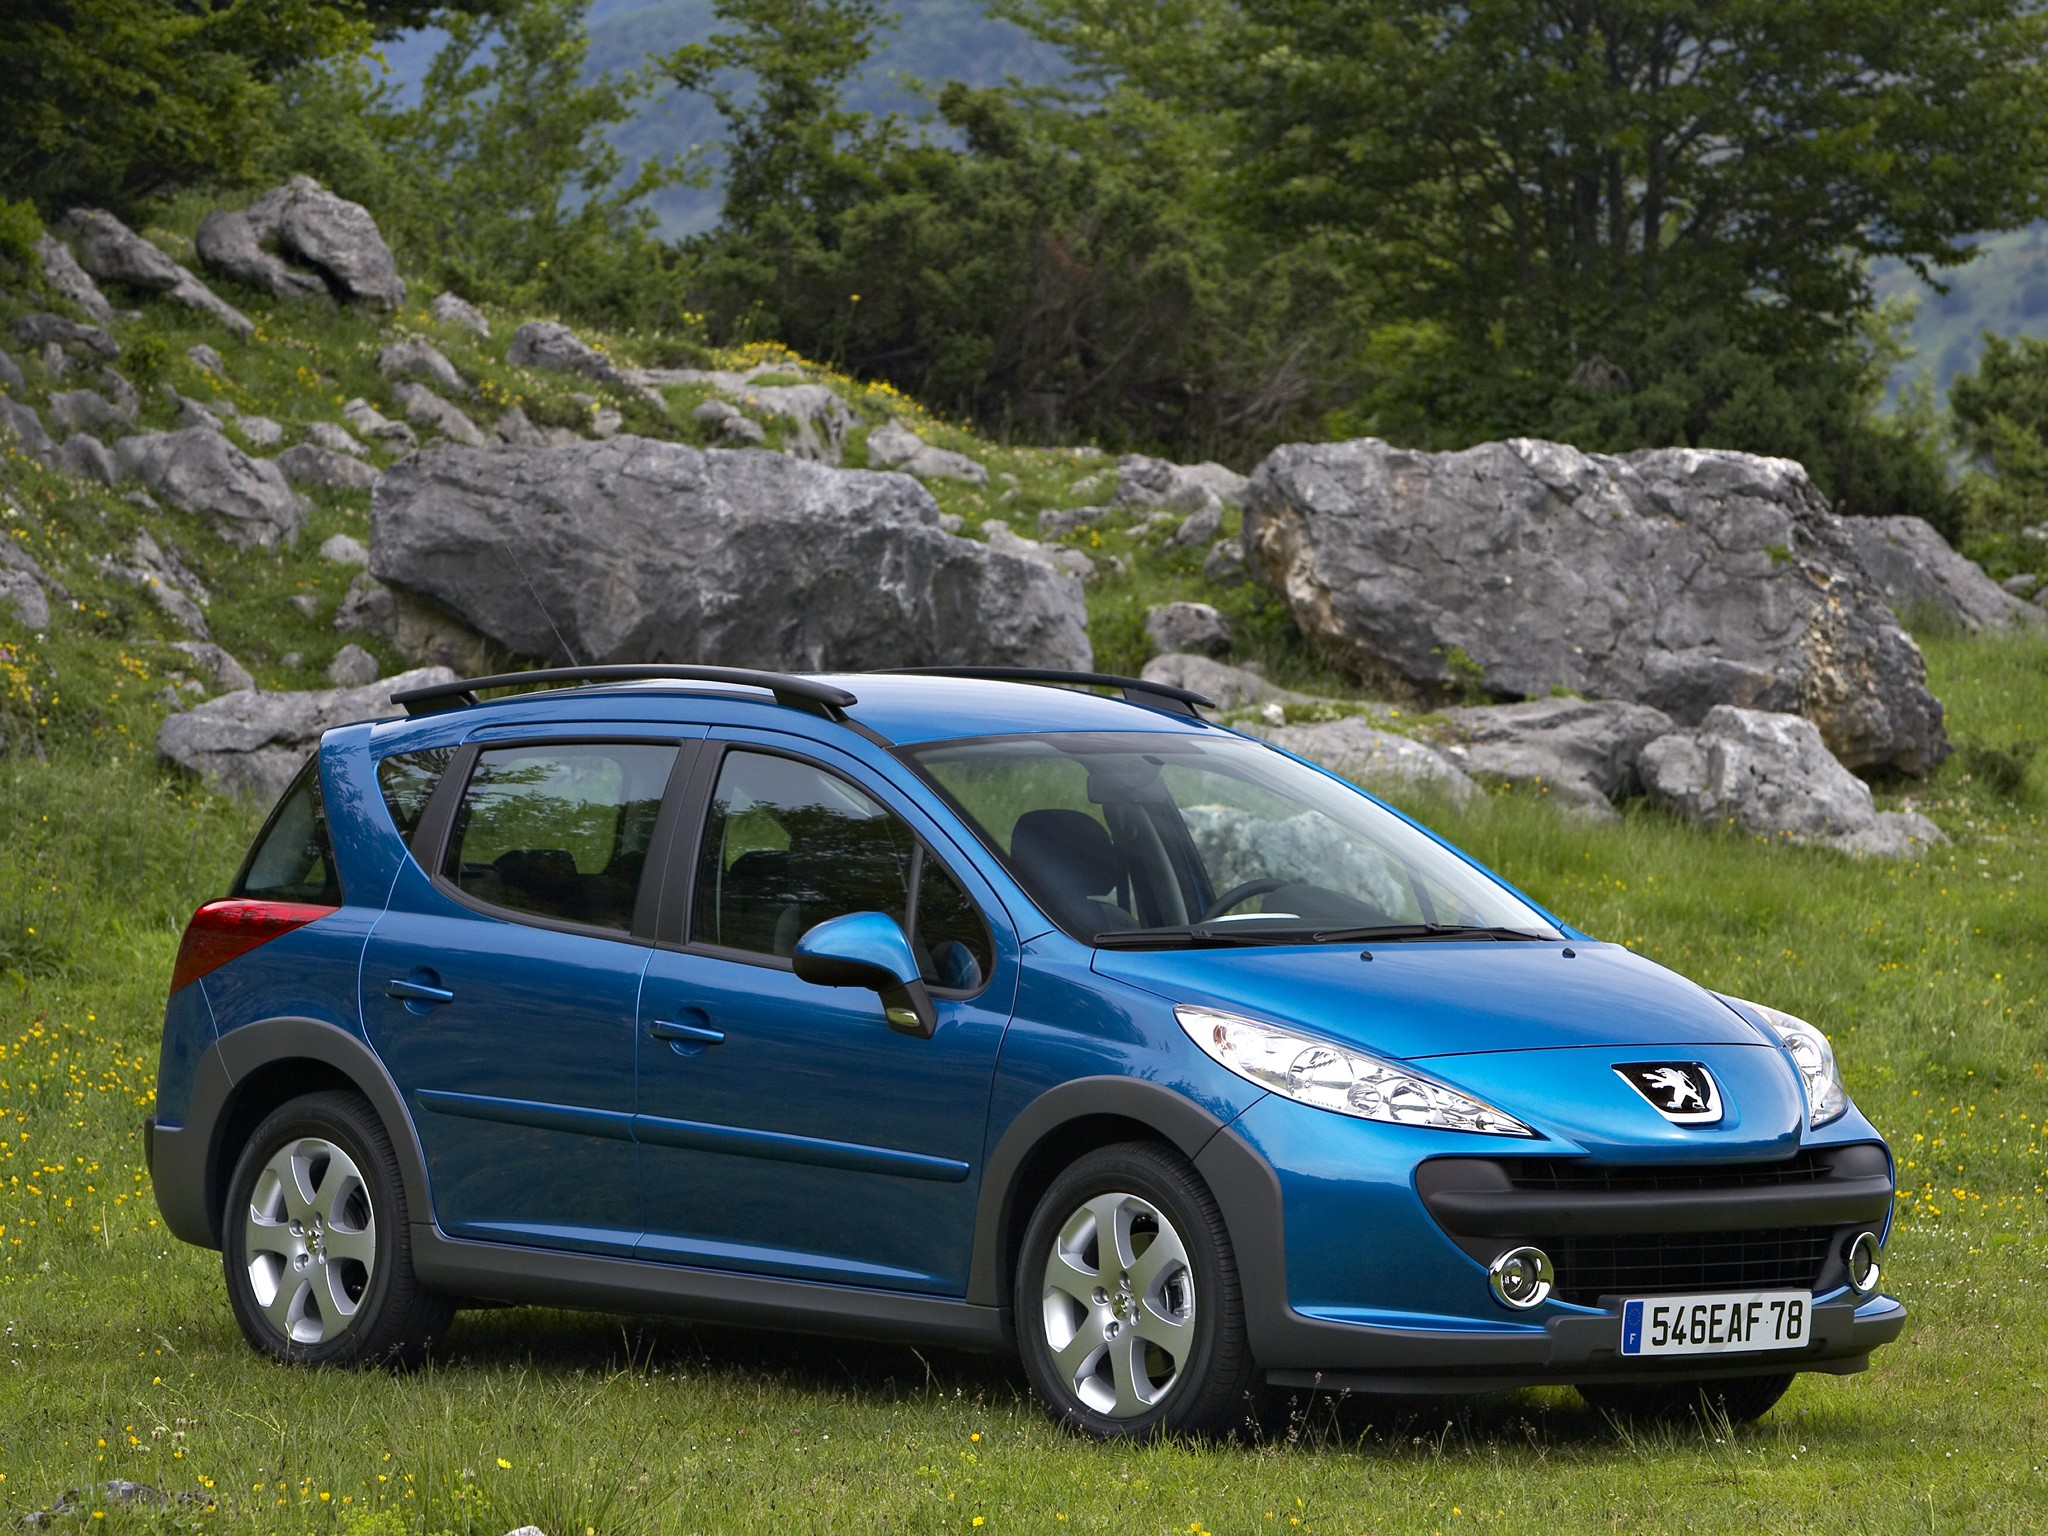 Off Roading Cars >> PEUGEOT 207 SW Outdoor specs & photos - 2008, 2009, 2010, 2011, 2012 - autoevolution